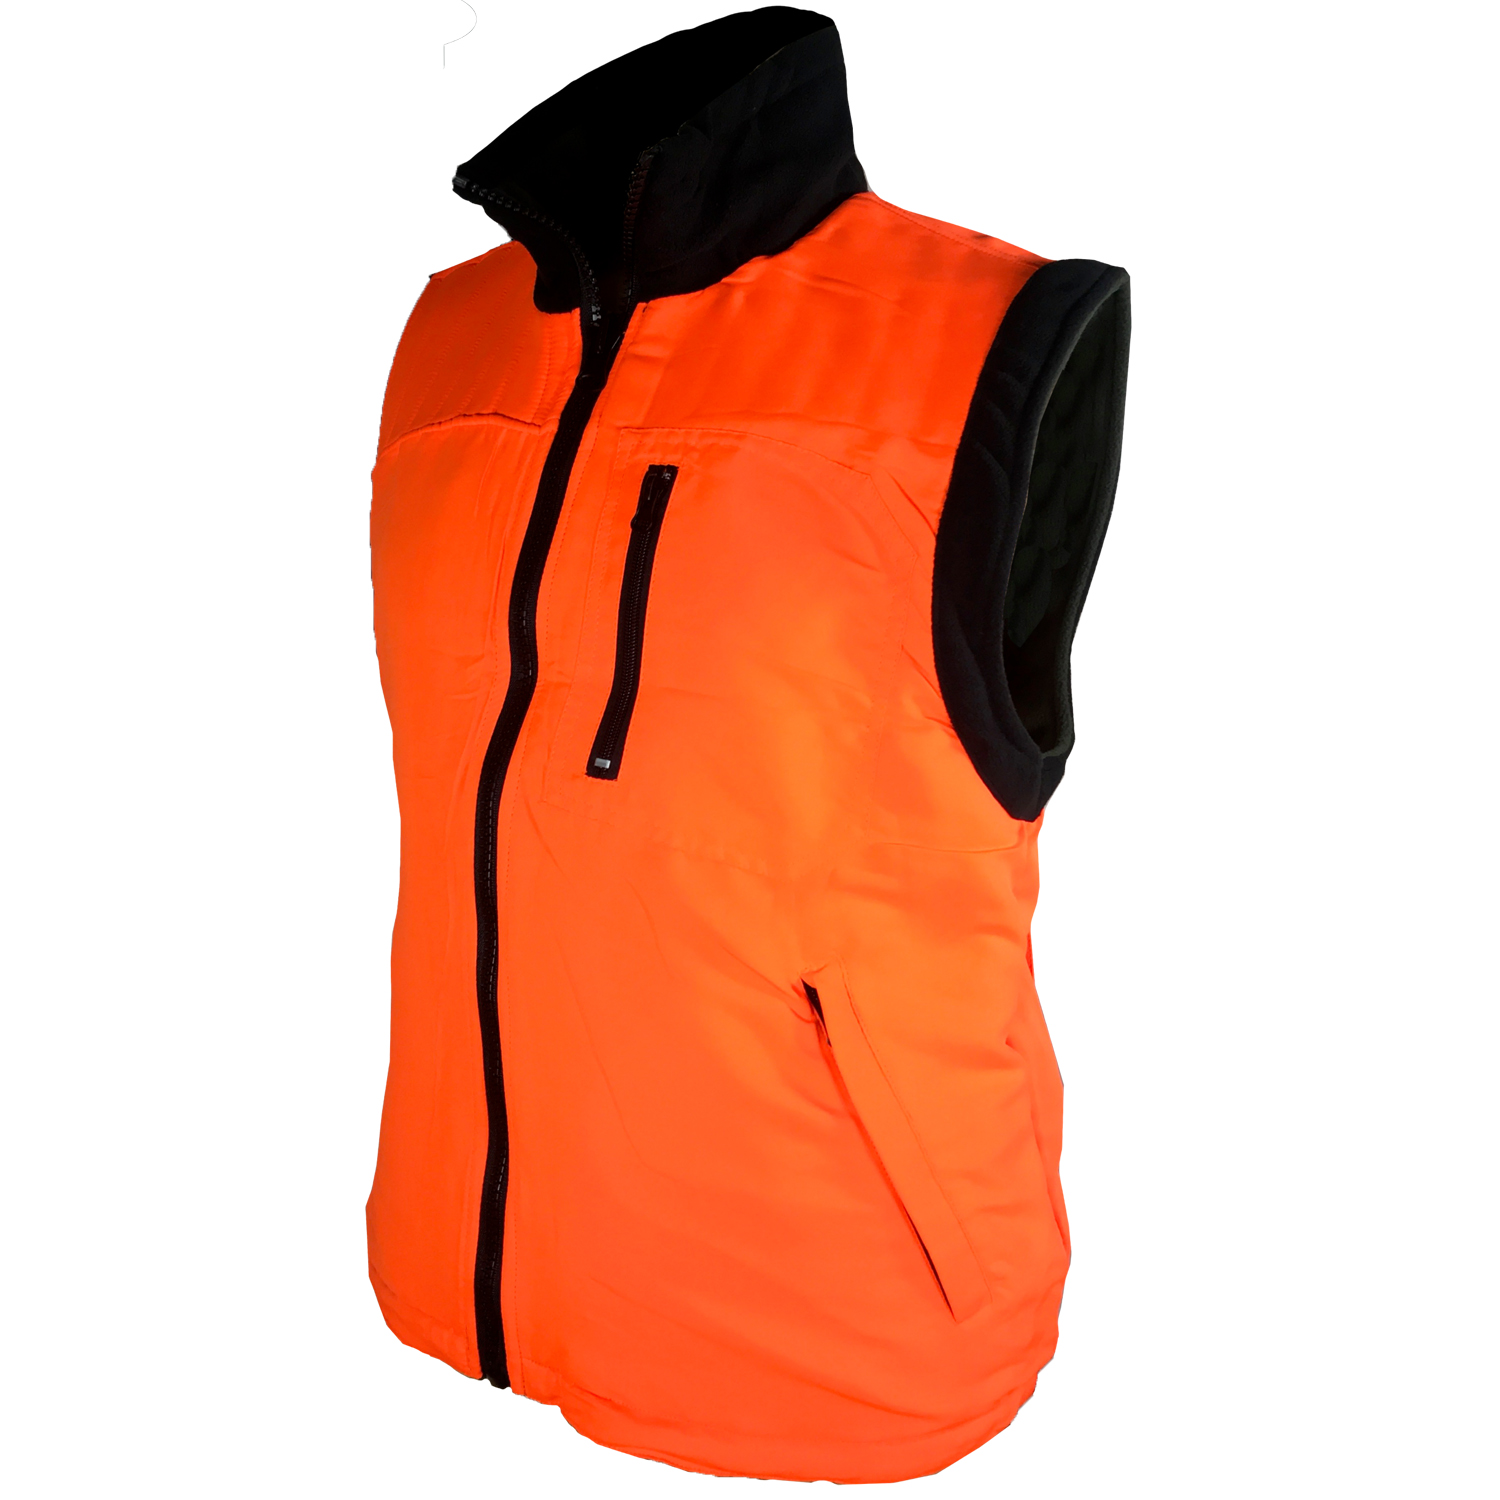 Sleeveless vest reversible microfleece anti-pilling wool hunting wild boar, snow mountain